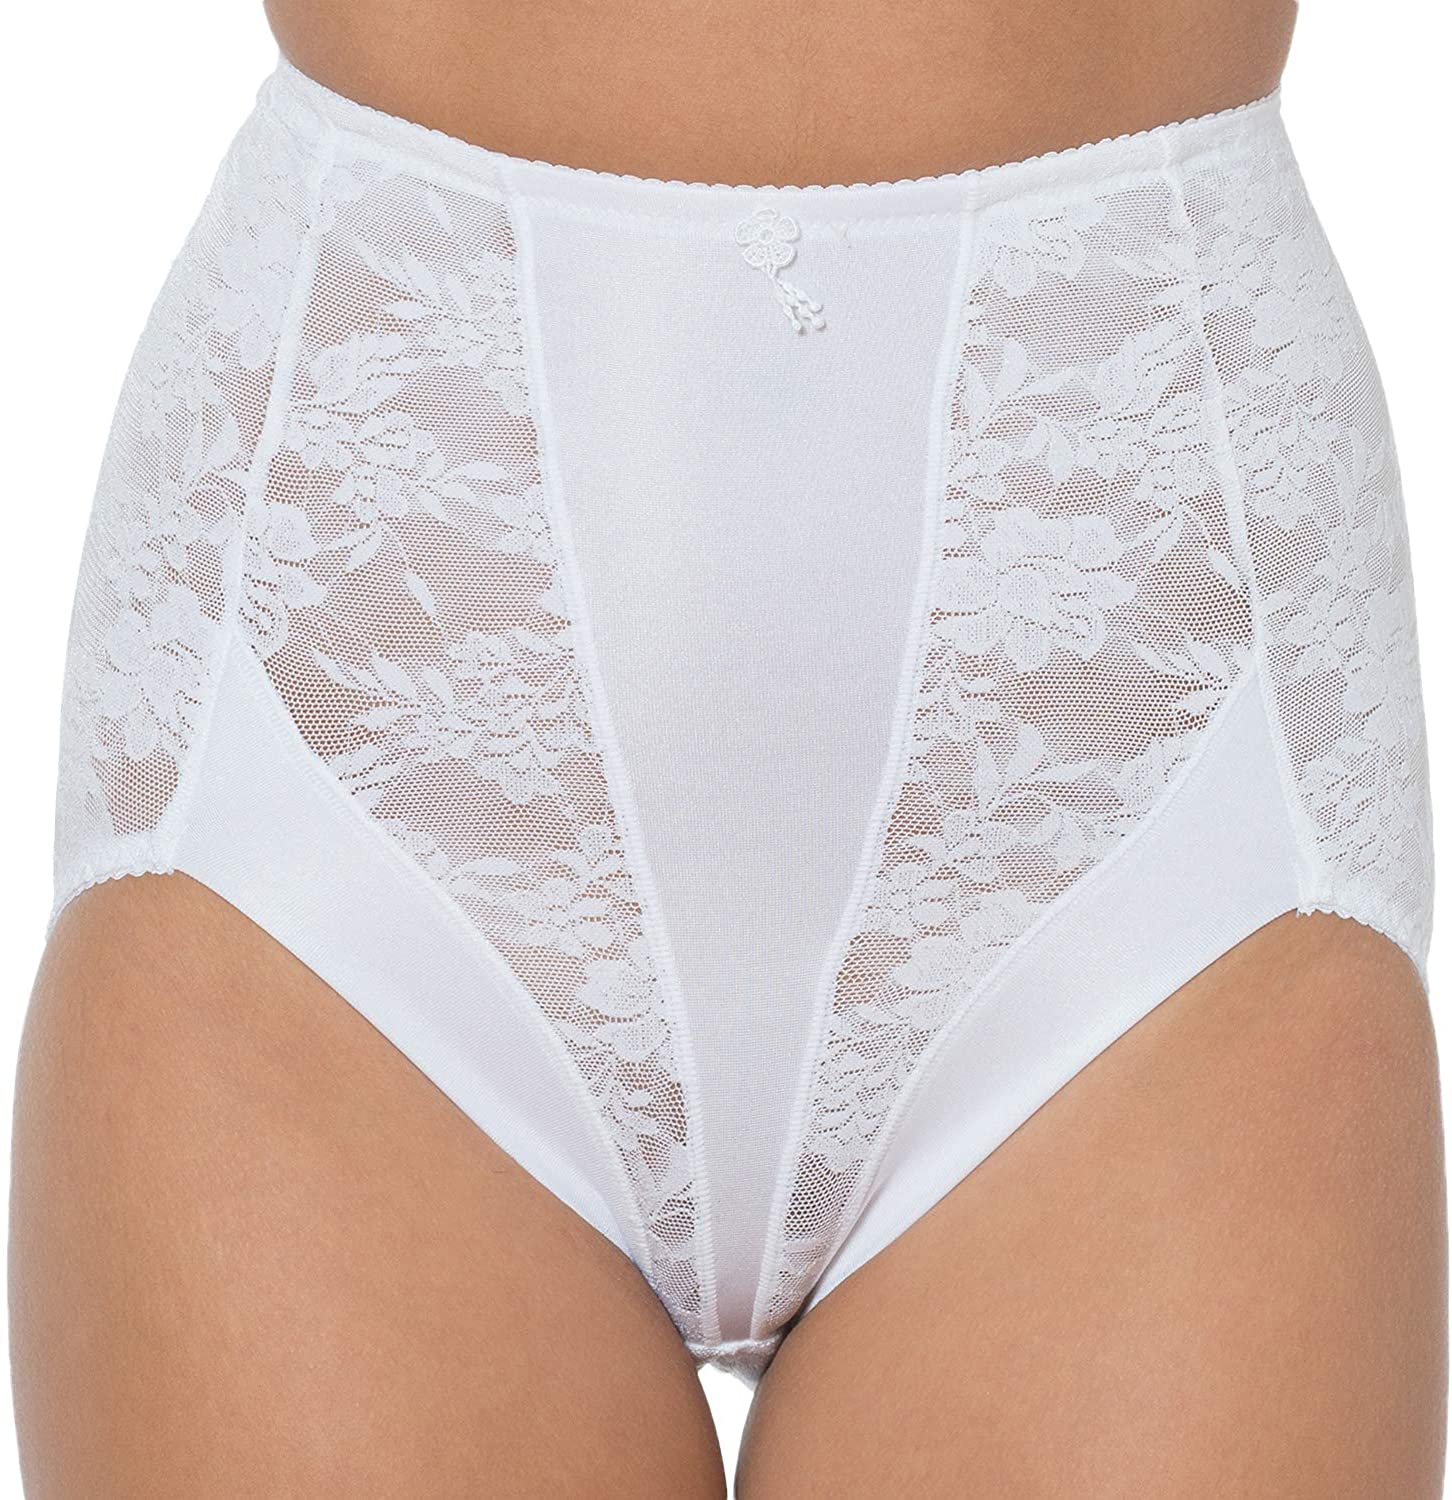 Cortland Intimates Style 4096 - High Waist Shaper Panties - Lace Panty Brief